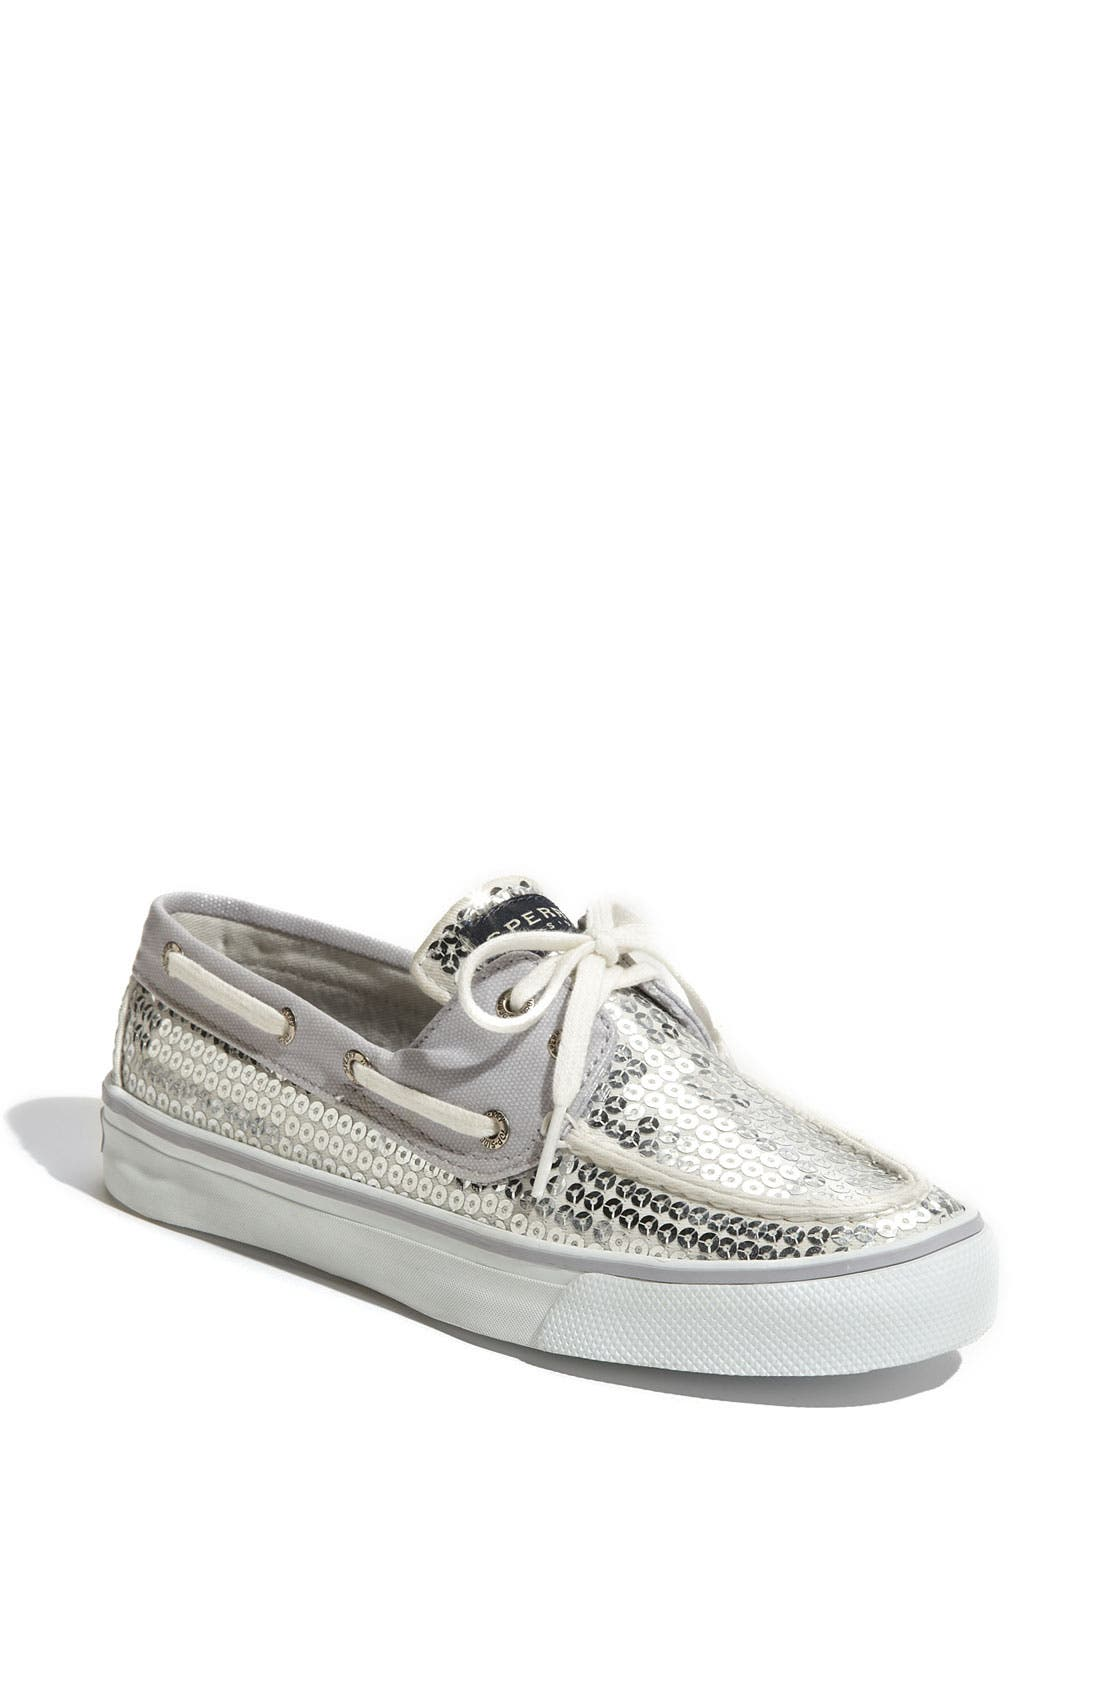 Top-Sider<sup>®</sup> 'Bahama' Sequined Boat Shoe,                             Main thumbnail 13, color,